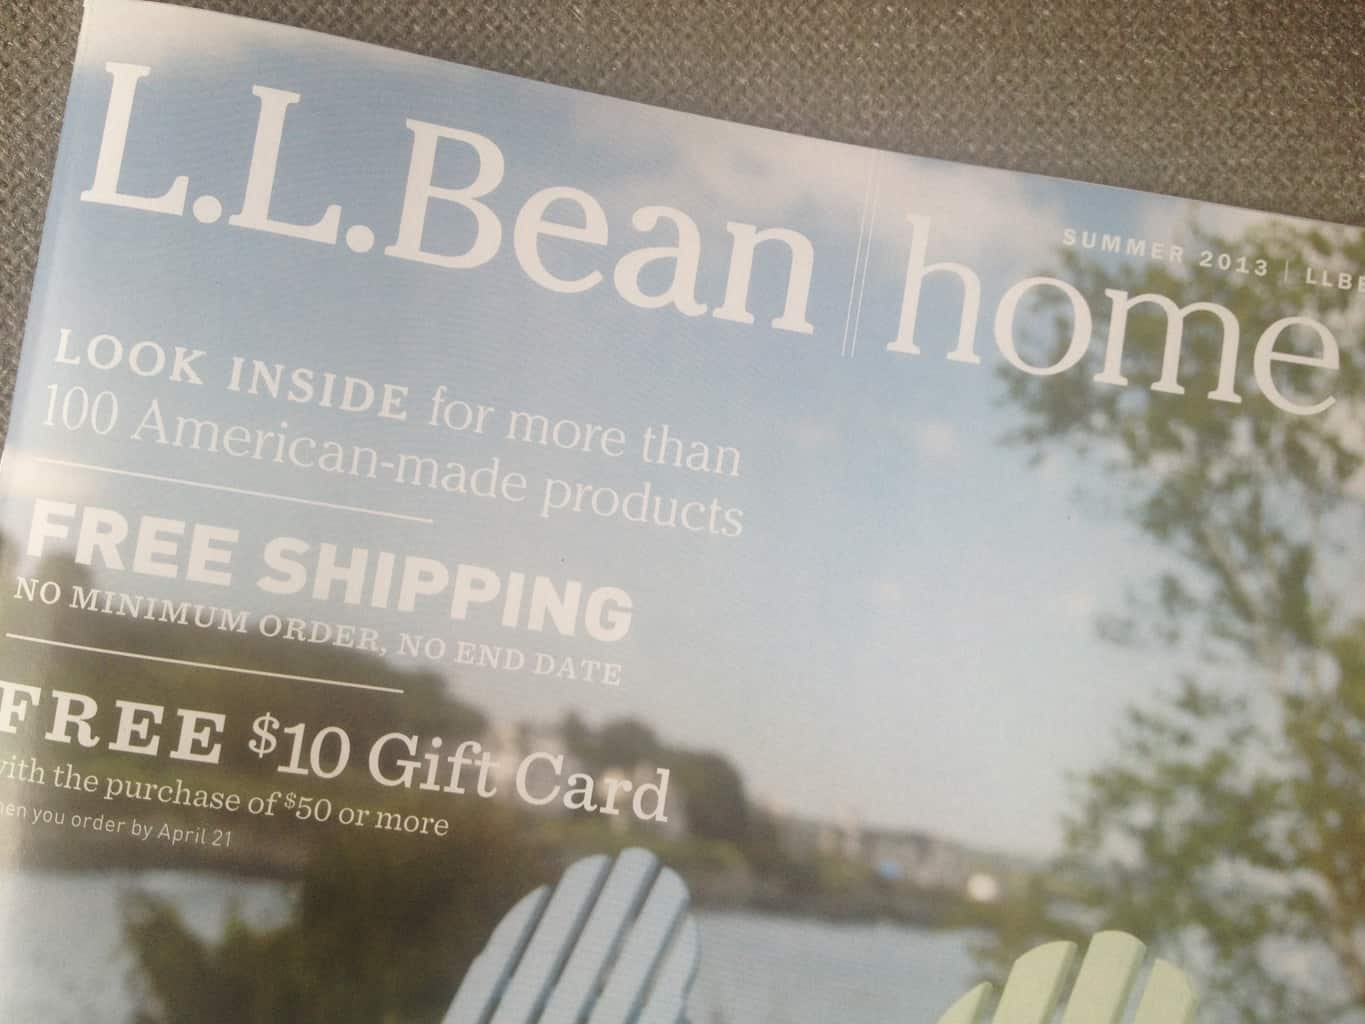 Grab the LL Bean Home Catalog for Furniture Made in USA